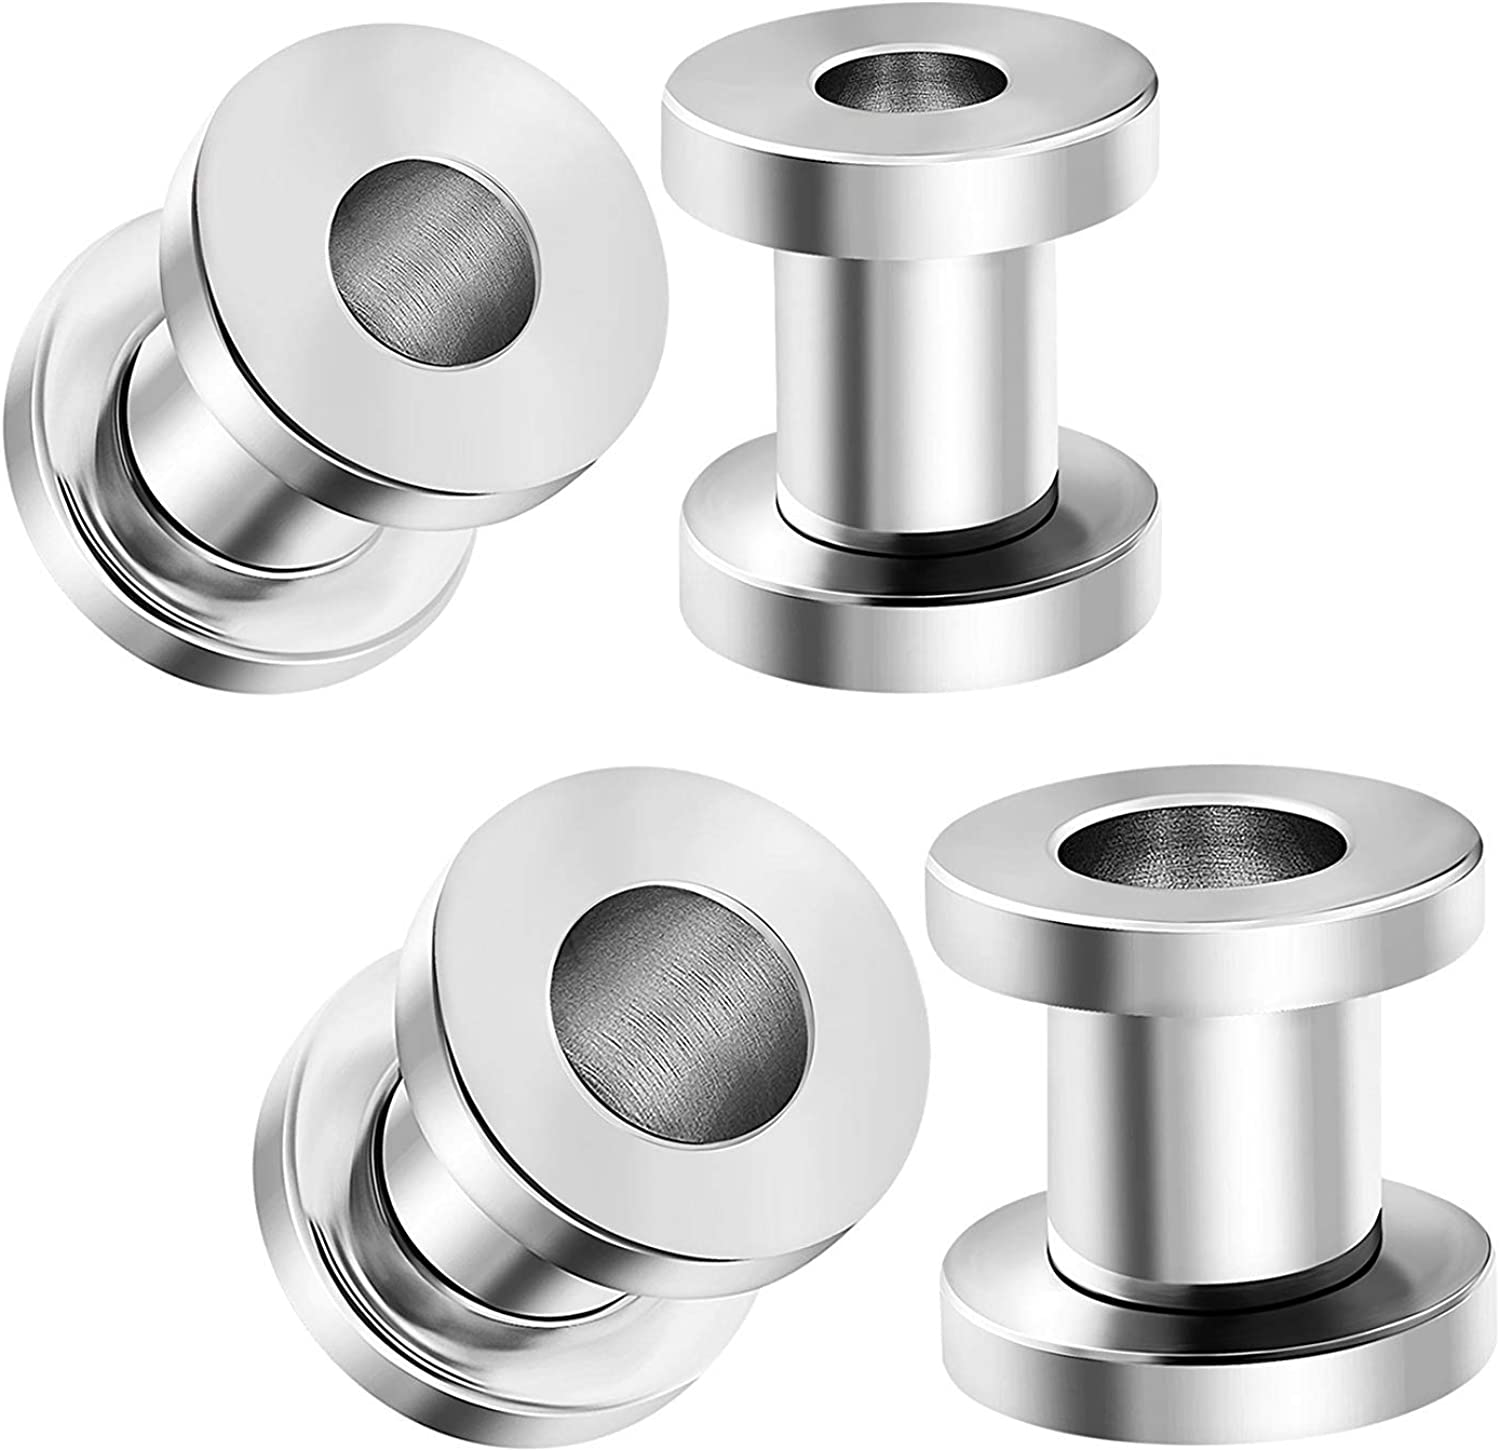 CABBE KALLO 18PCS Ear Tunnels Stretching Kit Stainless Steel Screw Fit Gauge Plugs Set 14G-00G Double Flared Expander